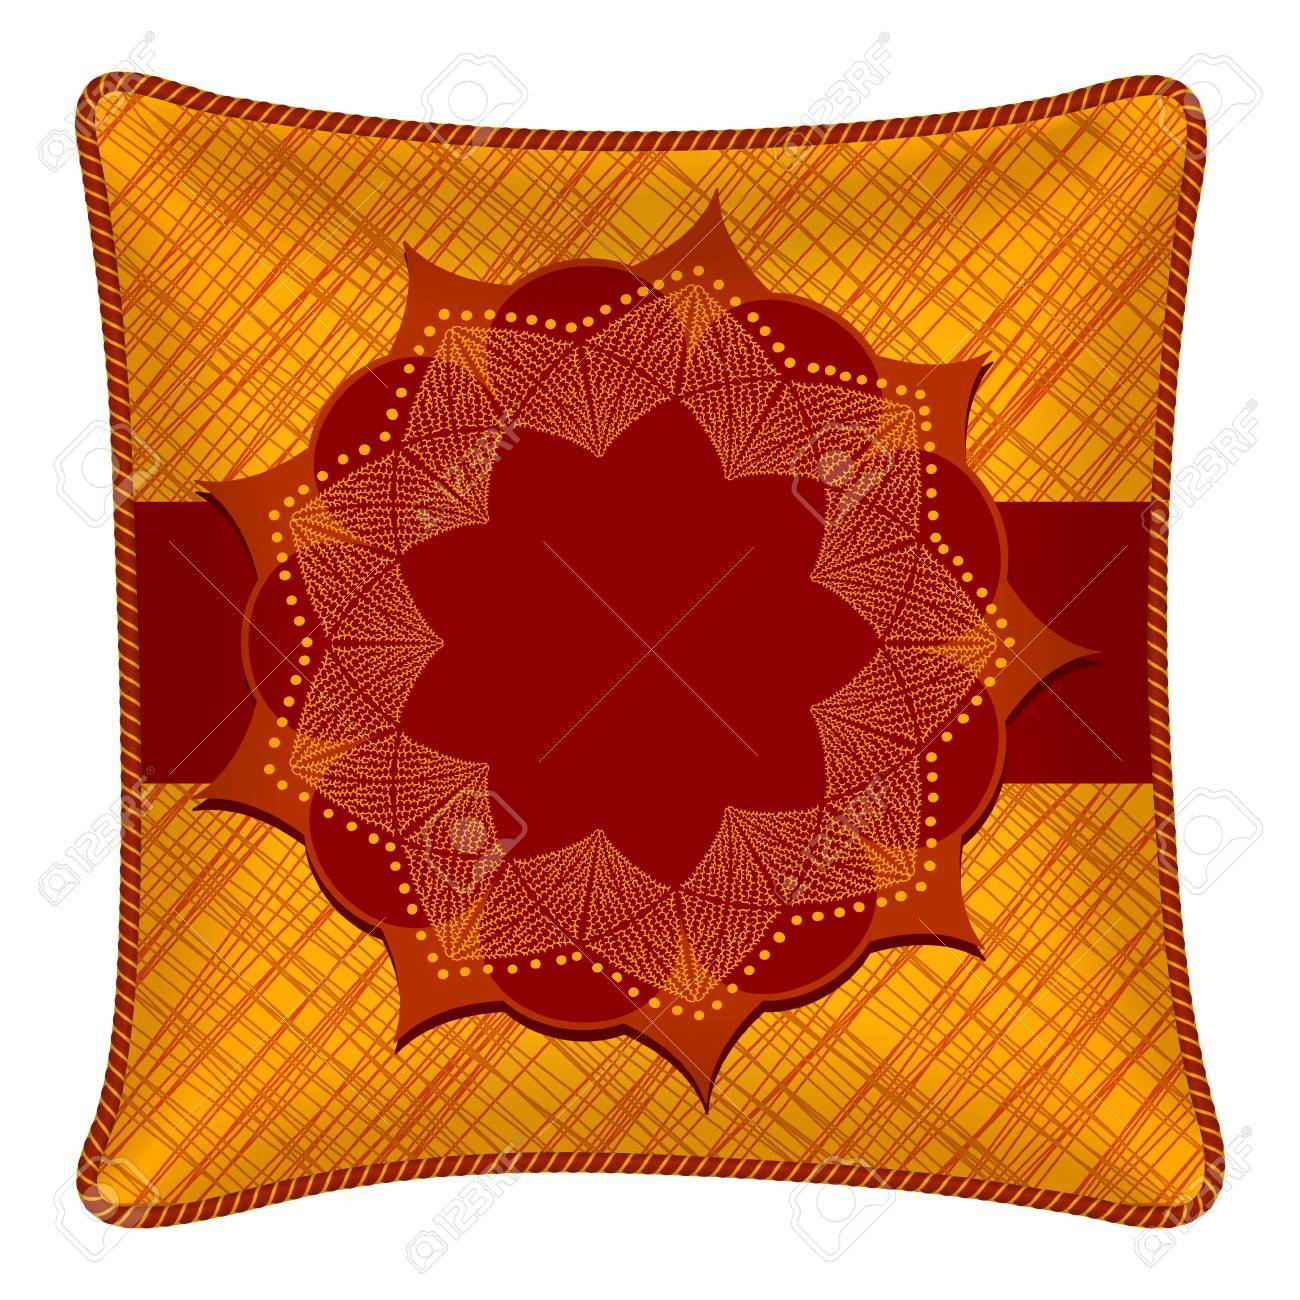 Interior Design Element Decorative Pillow With Patterned Pillowcase Abstract Flower On Bright Orange Background